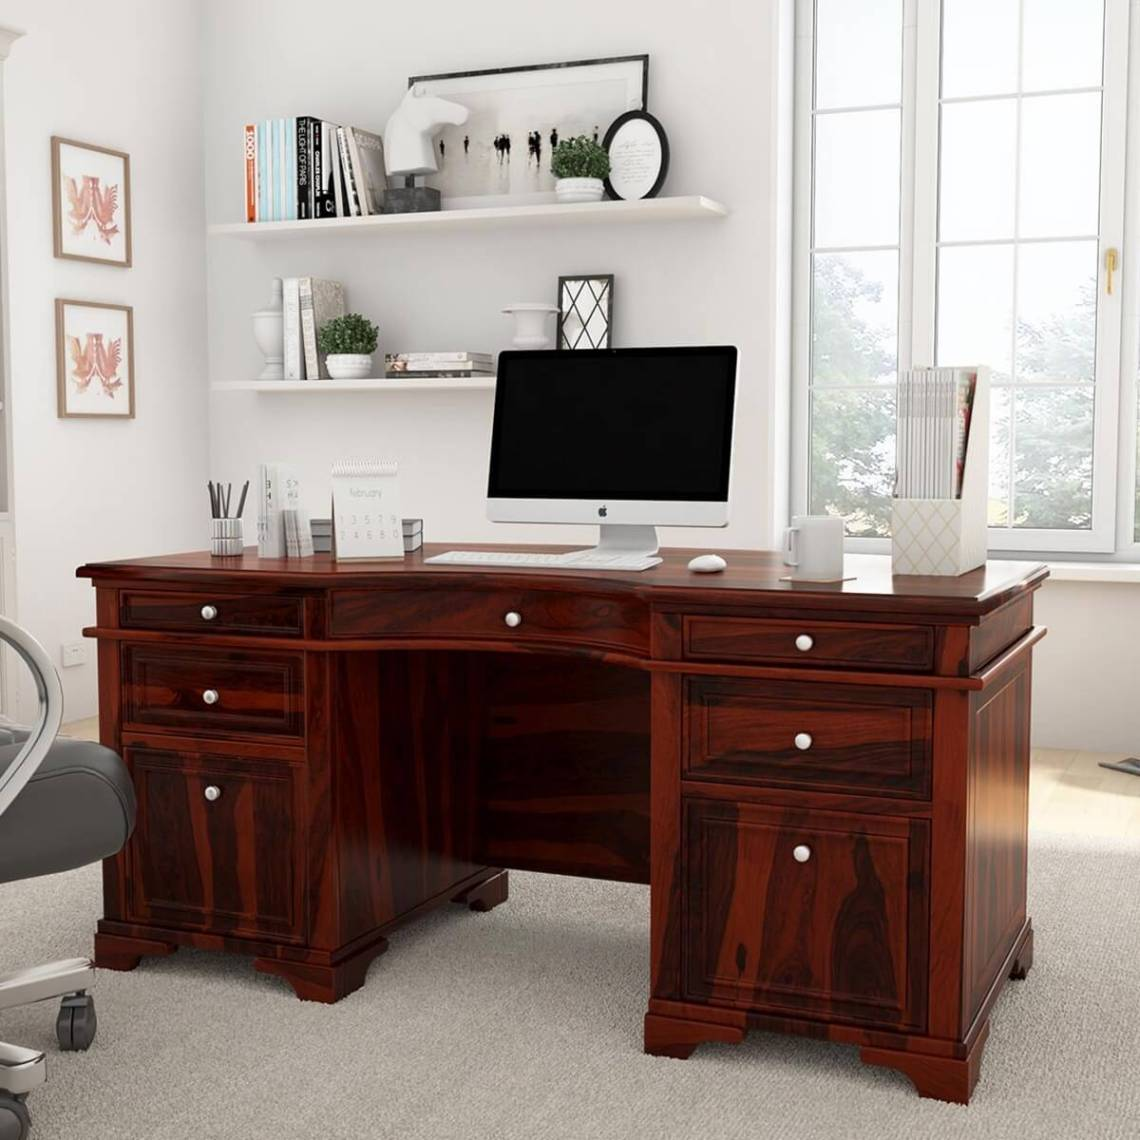 title | Wood Home Office Desk